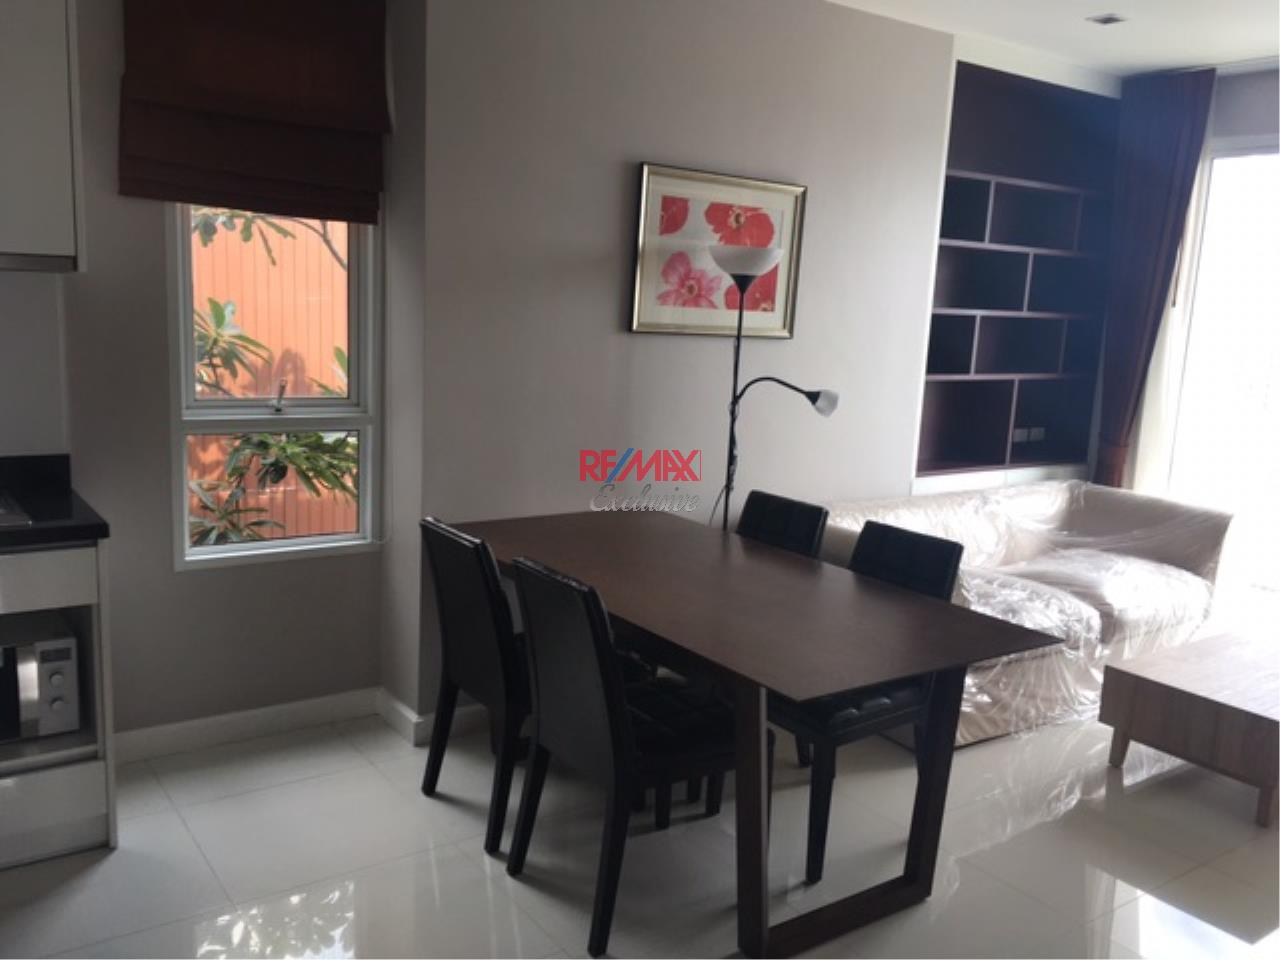 RE/MAX Exclusive Agency's The BLOOM, Sukhumvit 71.,2 Bedroom, 59 Sqm., Fully-Furnished, EXCLUSIVE UNIT, TOP FLOOR for RENT !! 4